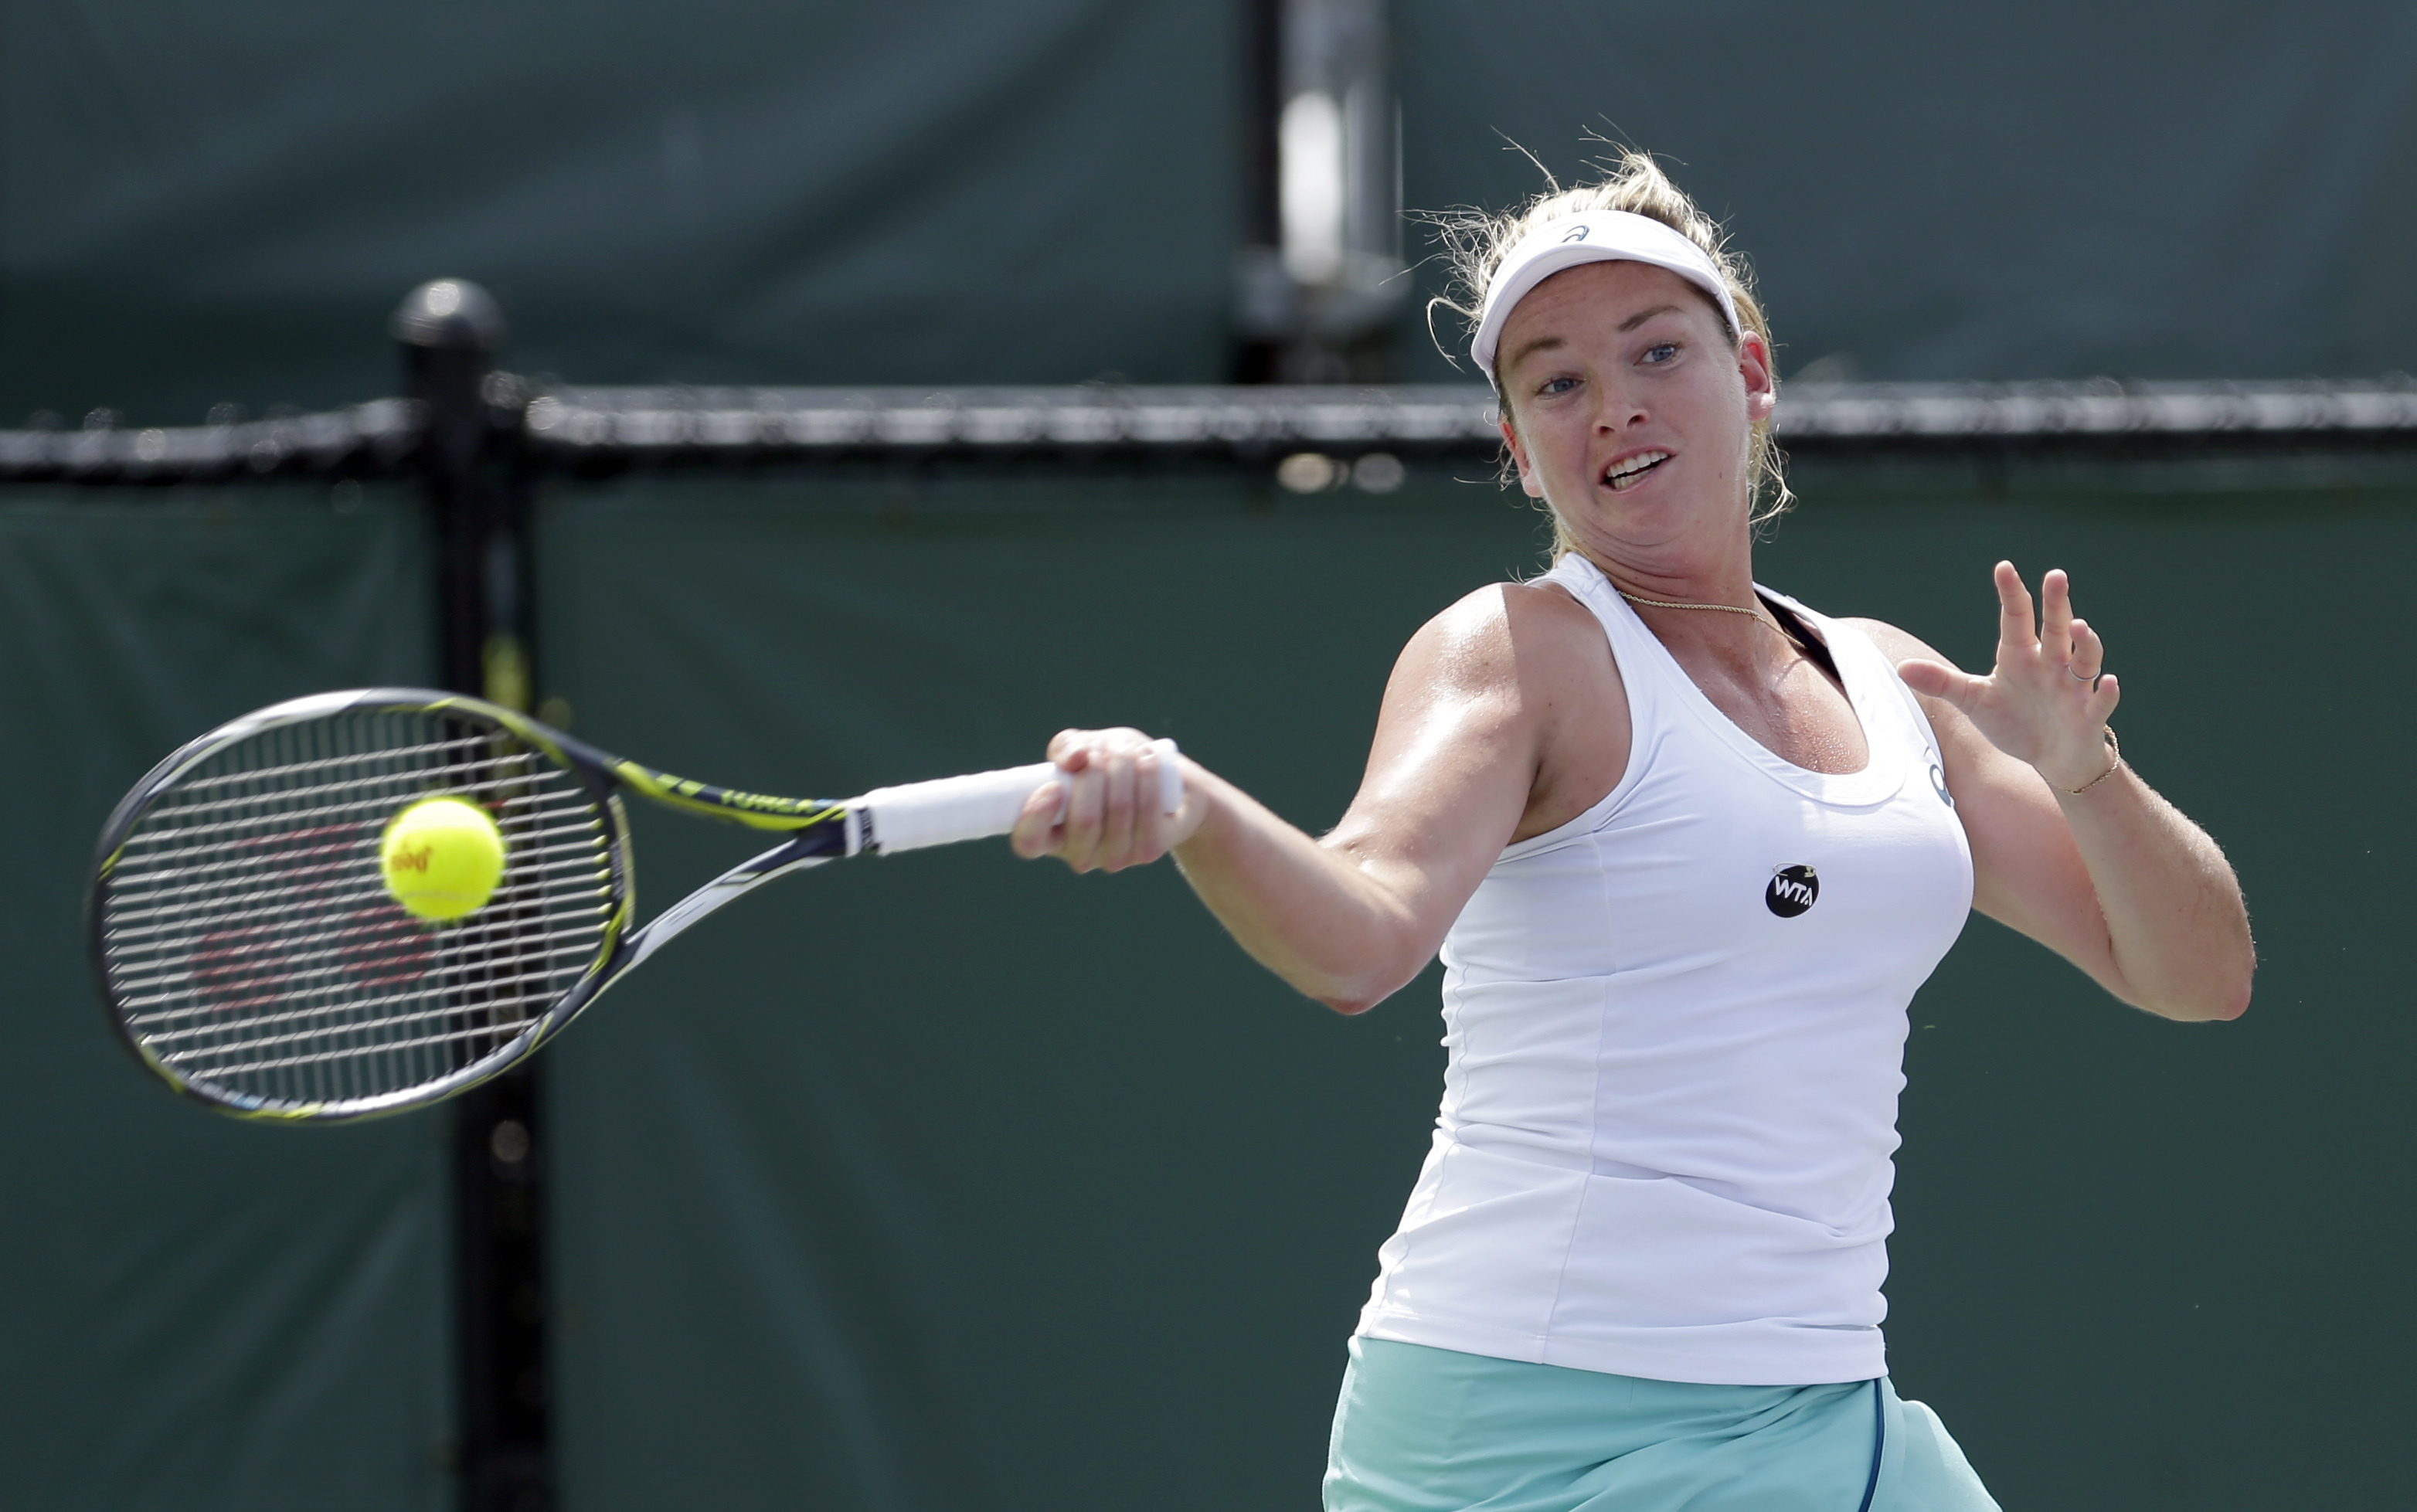 Coco Vandeweghe, of the United States, returns to Monica Niculescu during the Miami Open tennis tournament in Key Biscayne, Fla., Sunday, March 27, 2016. (AP Photo/Alan Diaz)